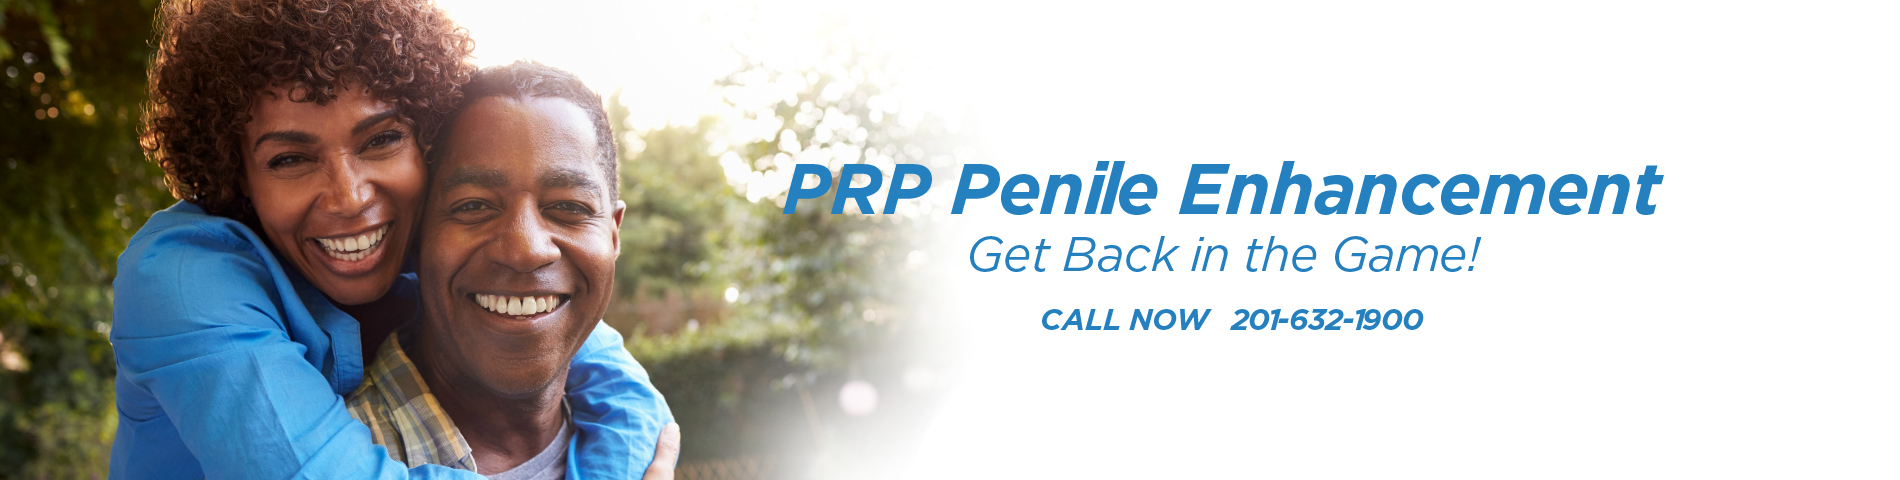 PRP For Penis Enlargement